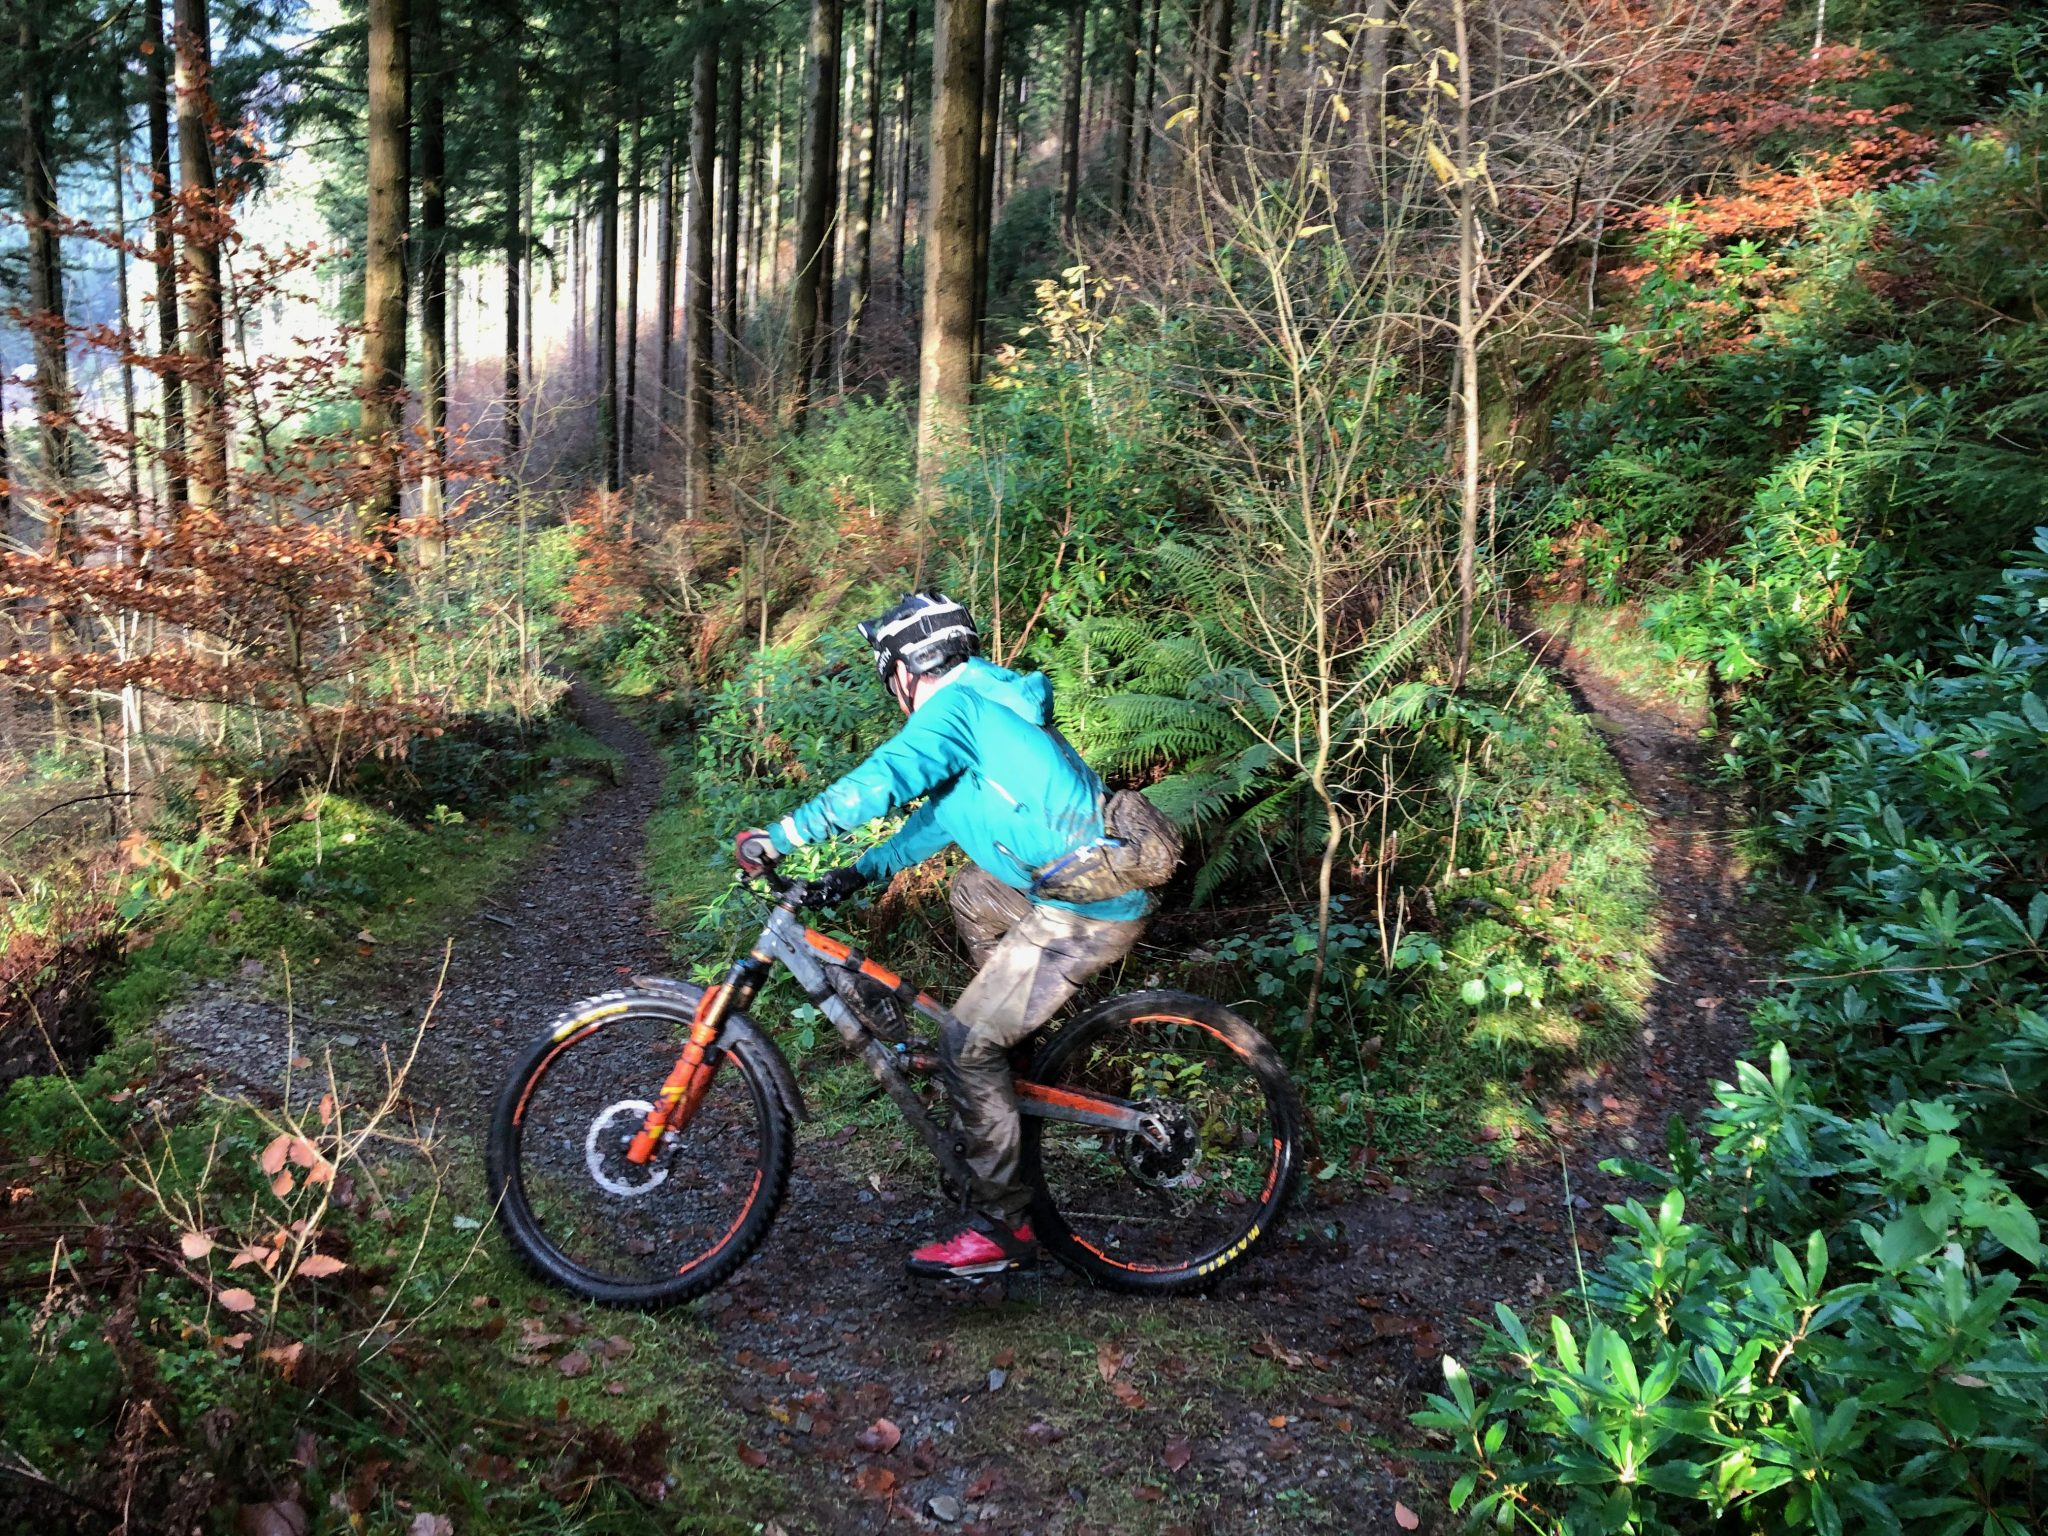 Guided ride, wales, Dyfi valley, uplifts, trips and adventures Wales, Forest of dean guide rides